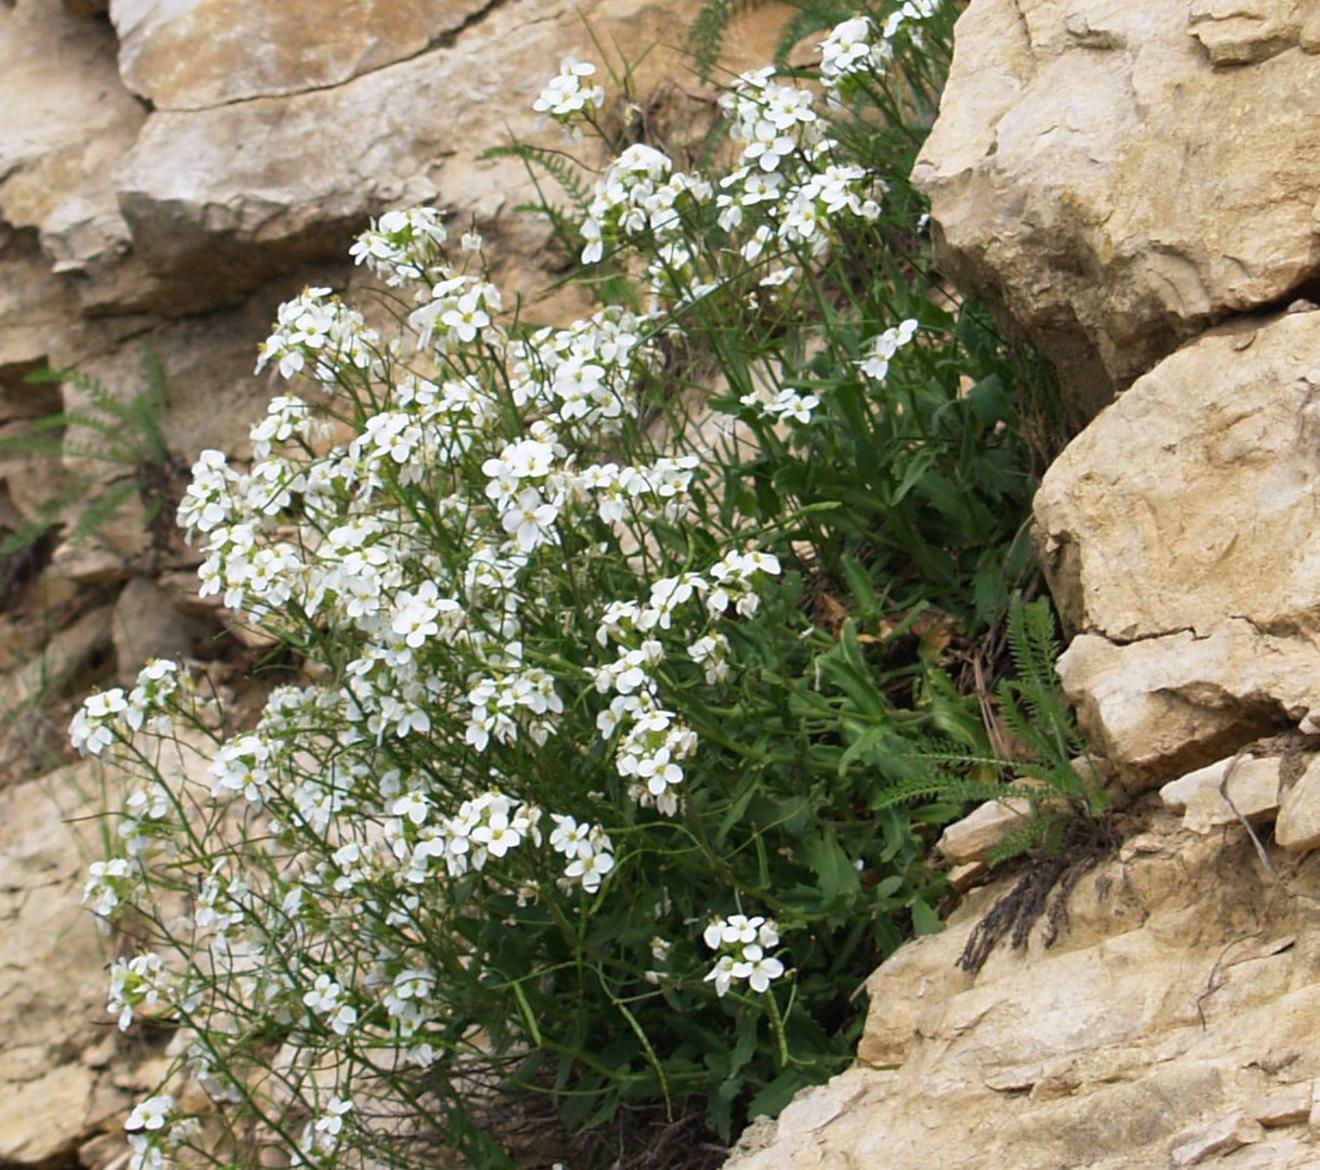 Rock-cress, Alpine